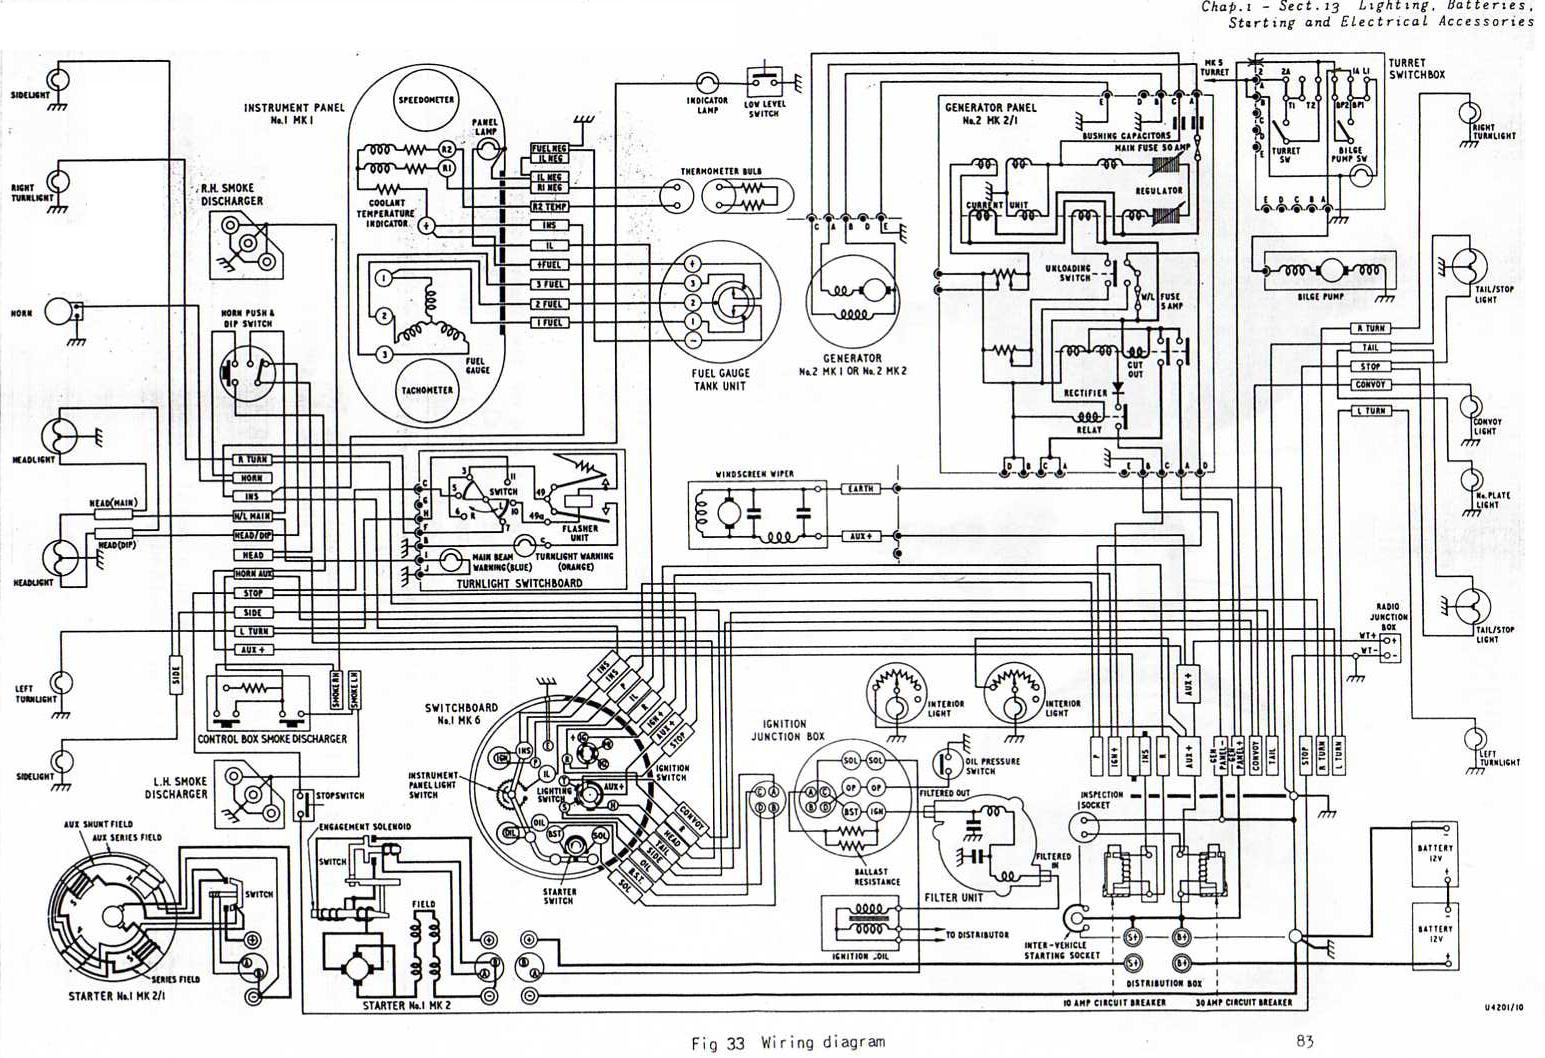 1969 Camaro Wiring Diagram Free Enthusiast Diagrams For 1967 Rs Ss Engine Get Image About Horn